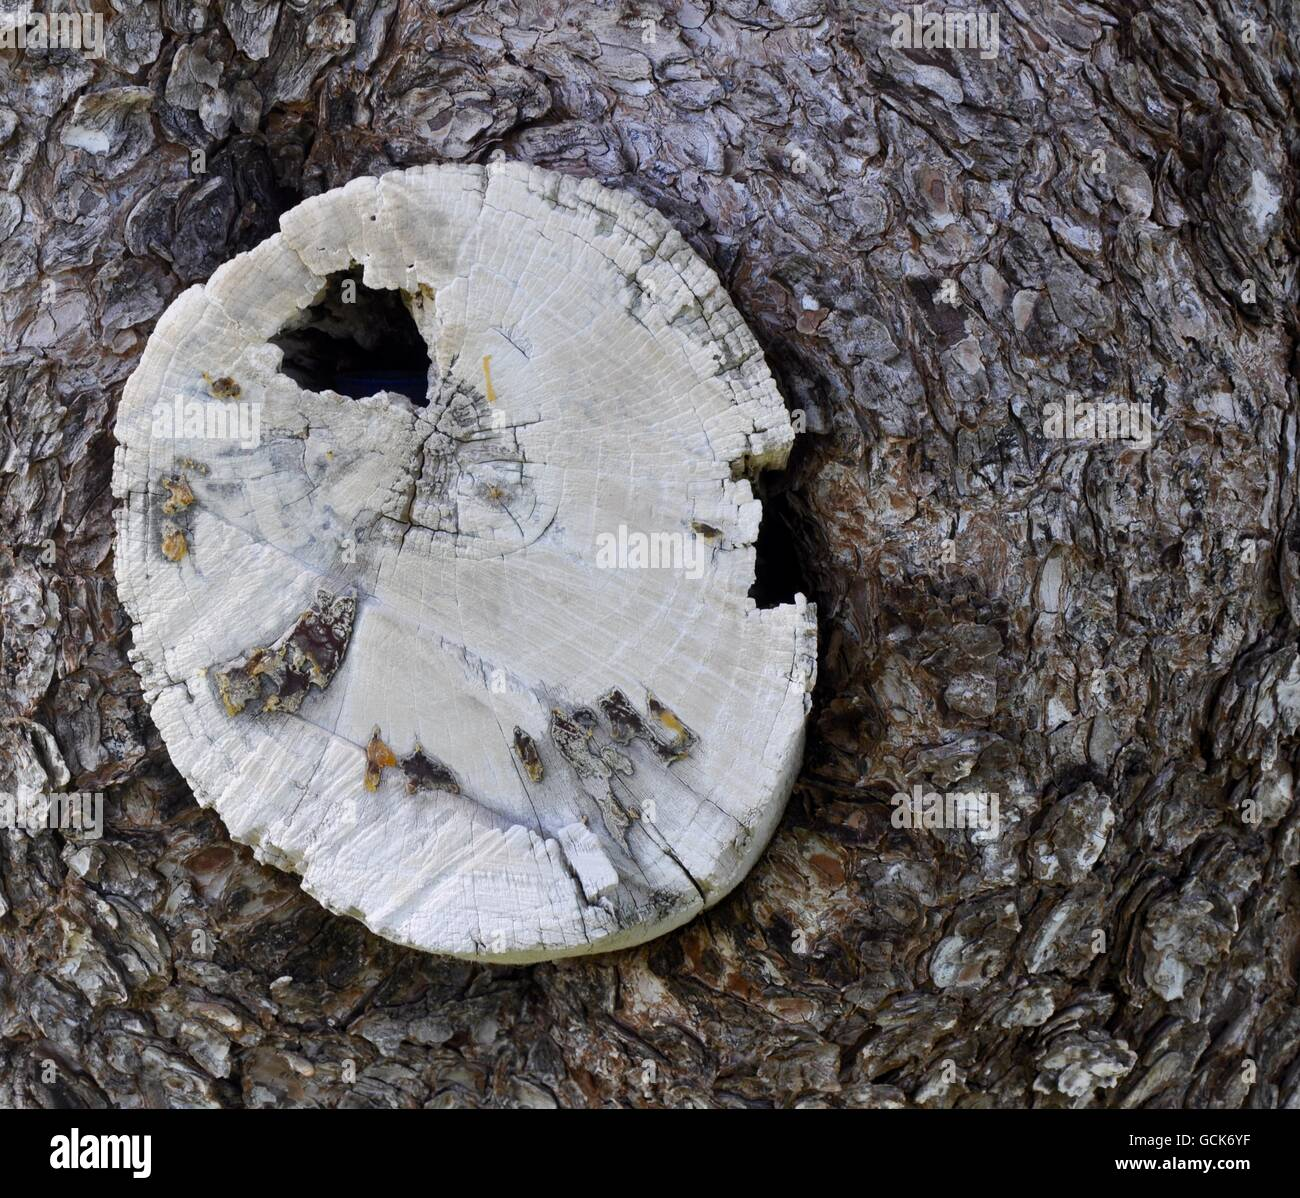 Abstract closeup of tree trunk texture with large white colored tree trunk nestled within grey bark in Western Australia. - Stock Image